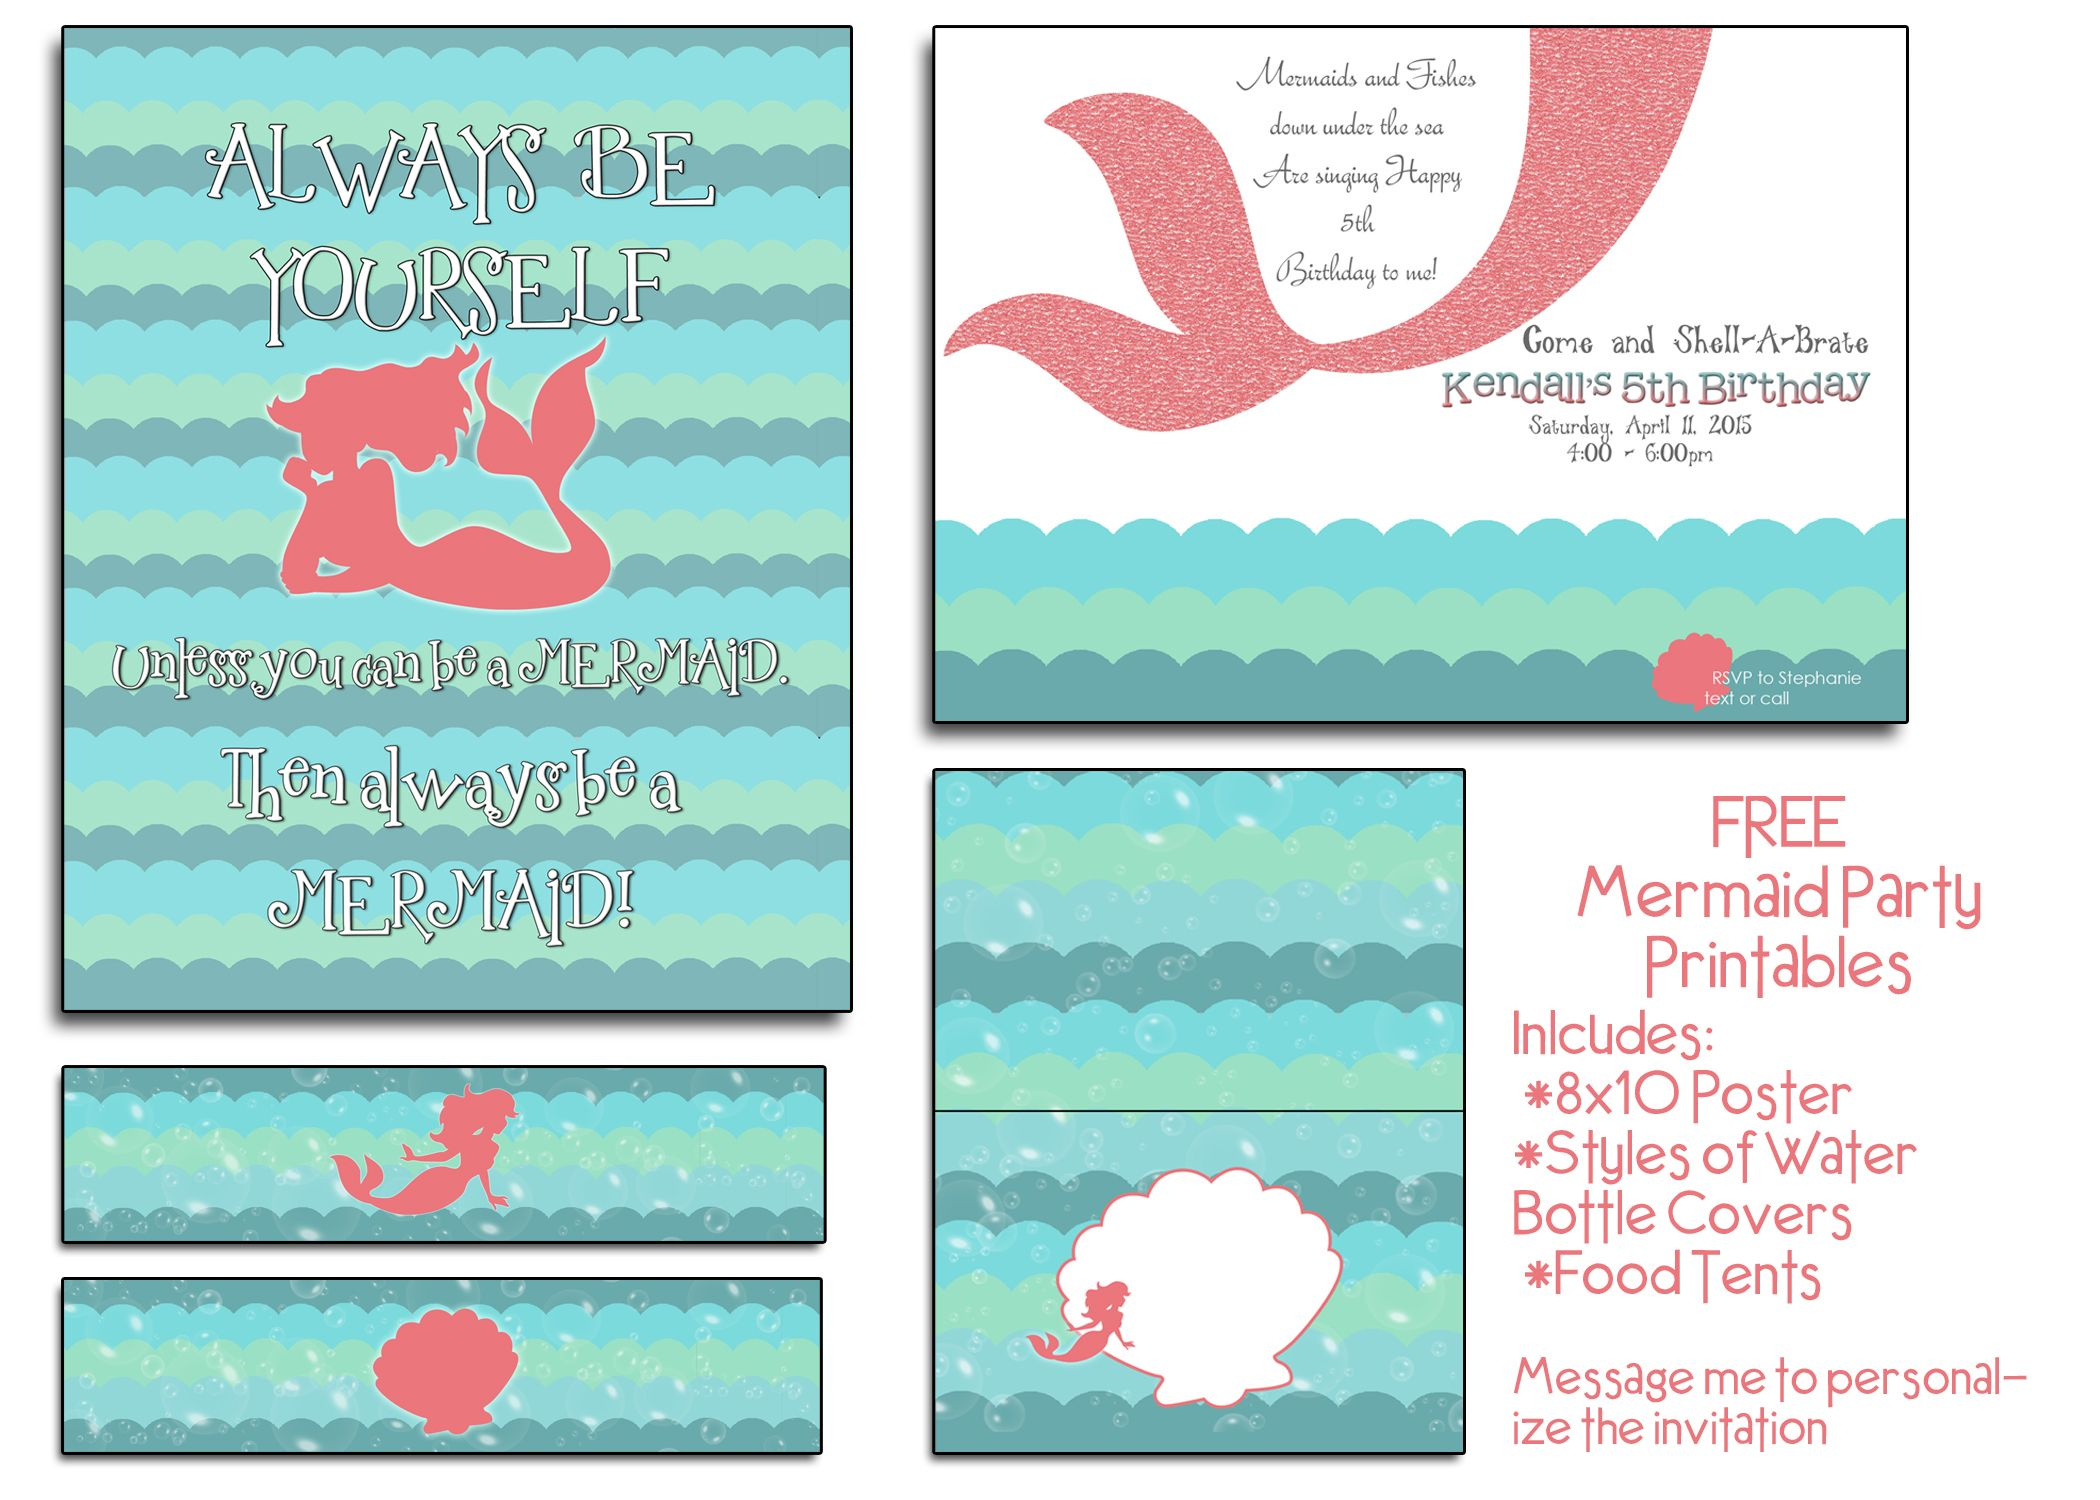 Free mermaid party printables i will even customize the invite at i will even customize the invite at no cost as well solutioingenieria Images